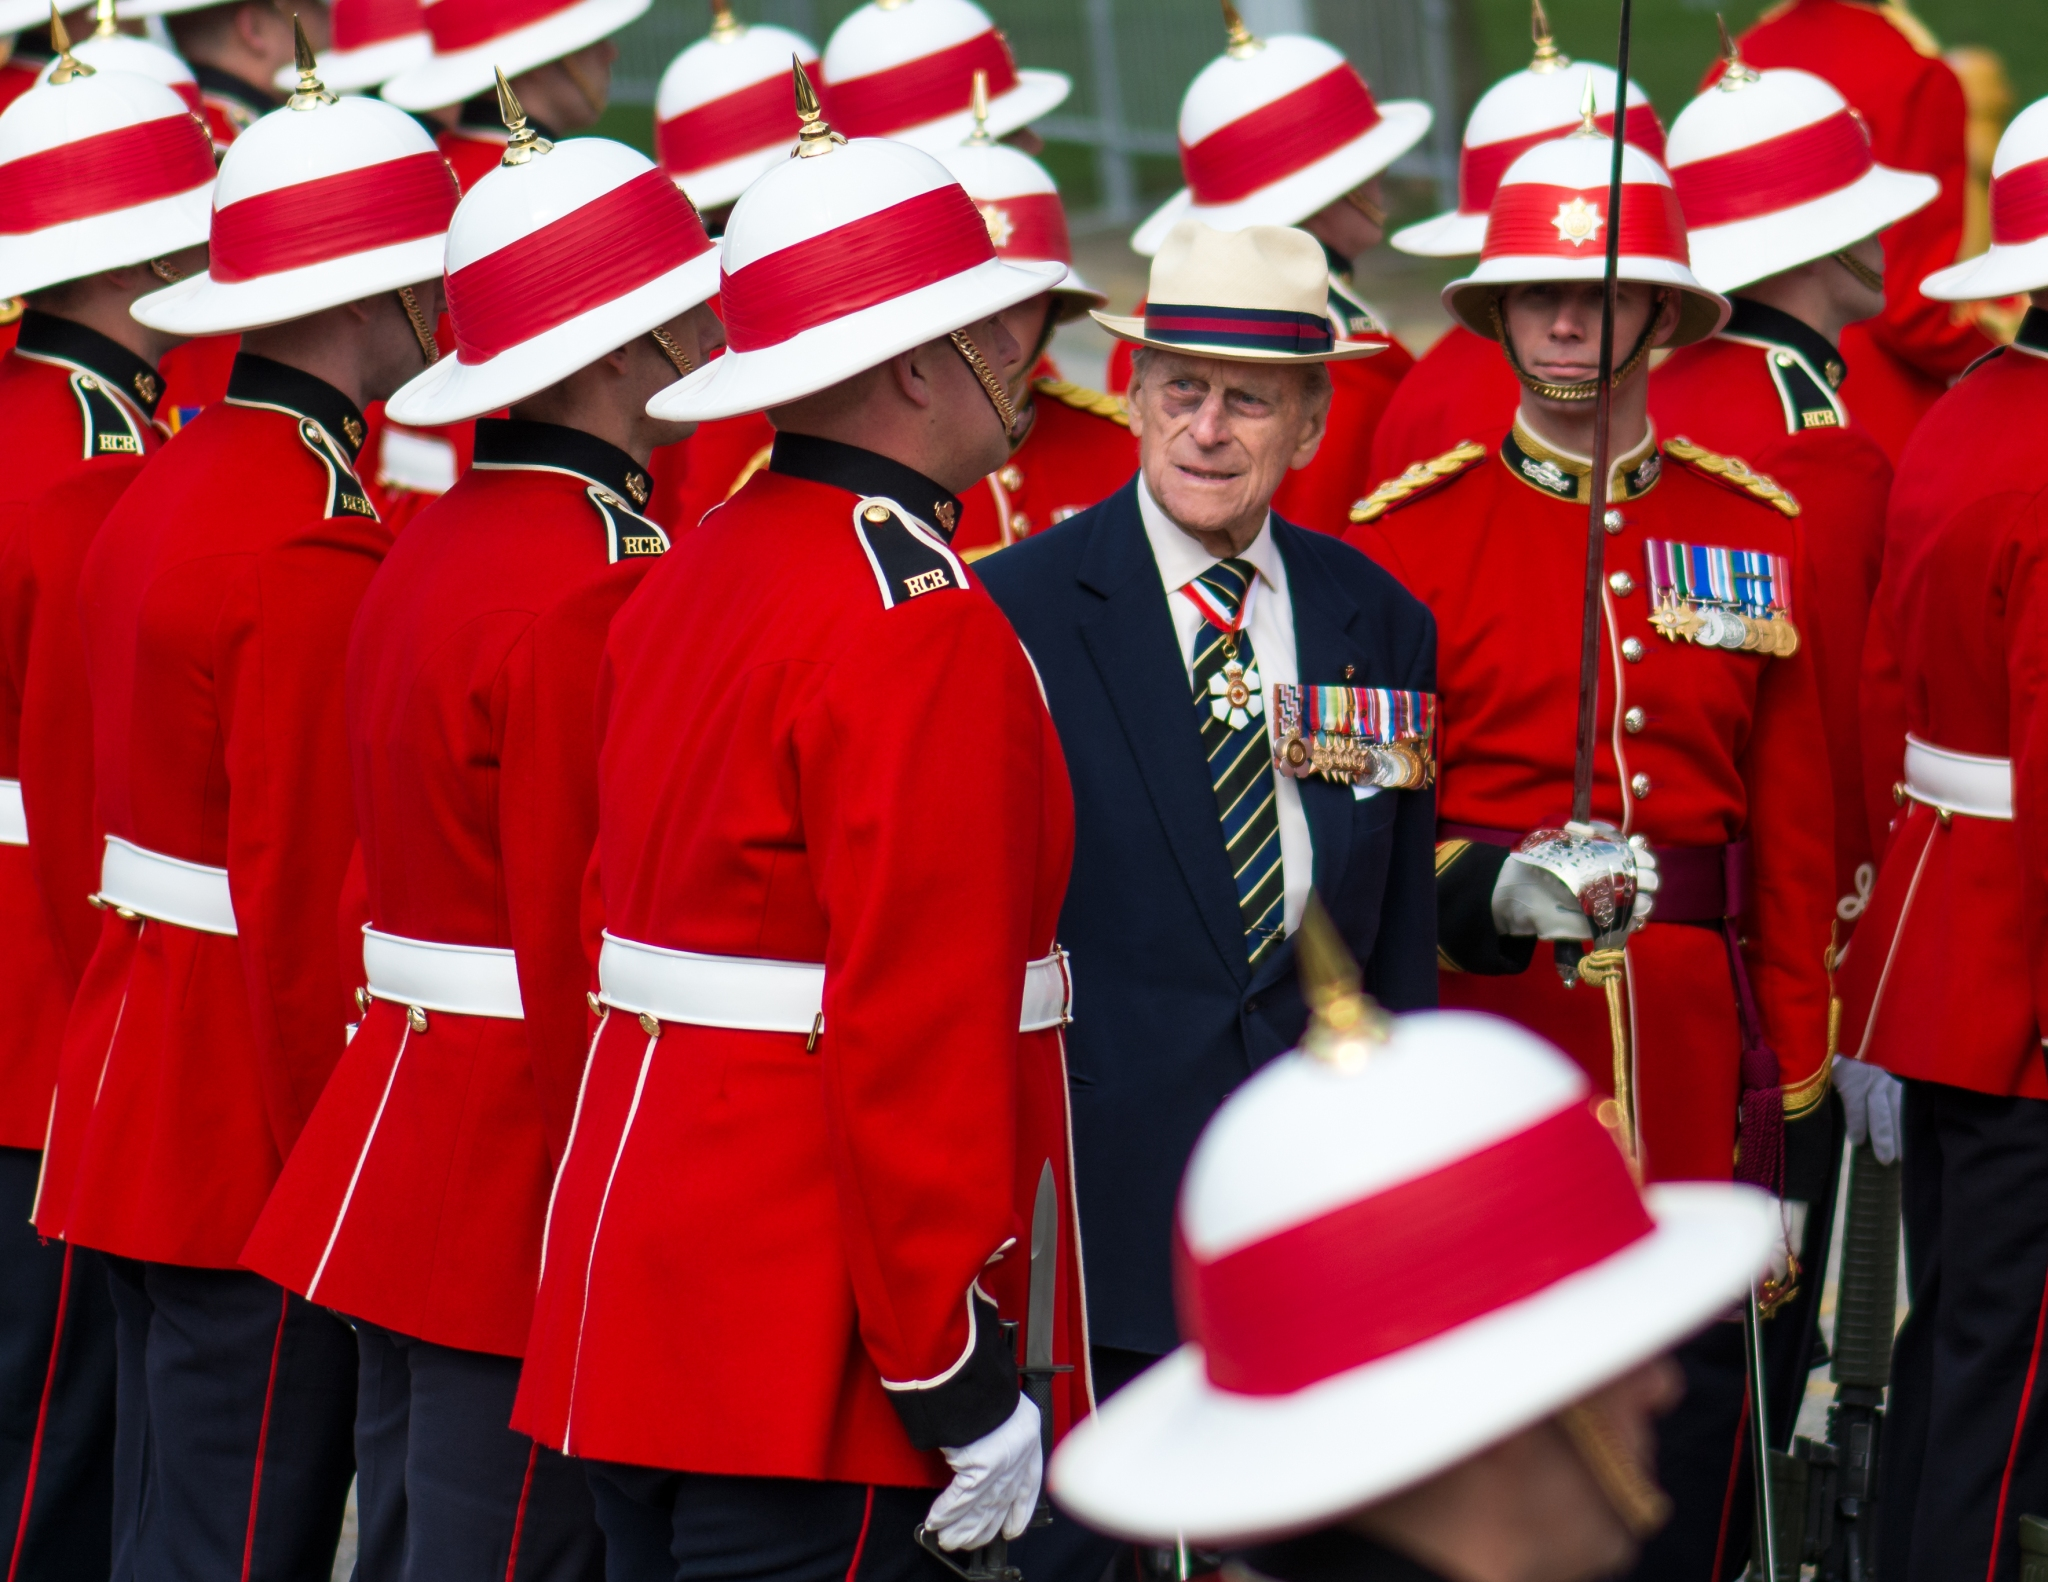 Prince Philip visits Canada to present the new Colours to the 3rd Battalion of the Royal Canadian Regiment. The ceremony takes place in front of the Queen's Park Legislative Assembly of Ontario.